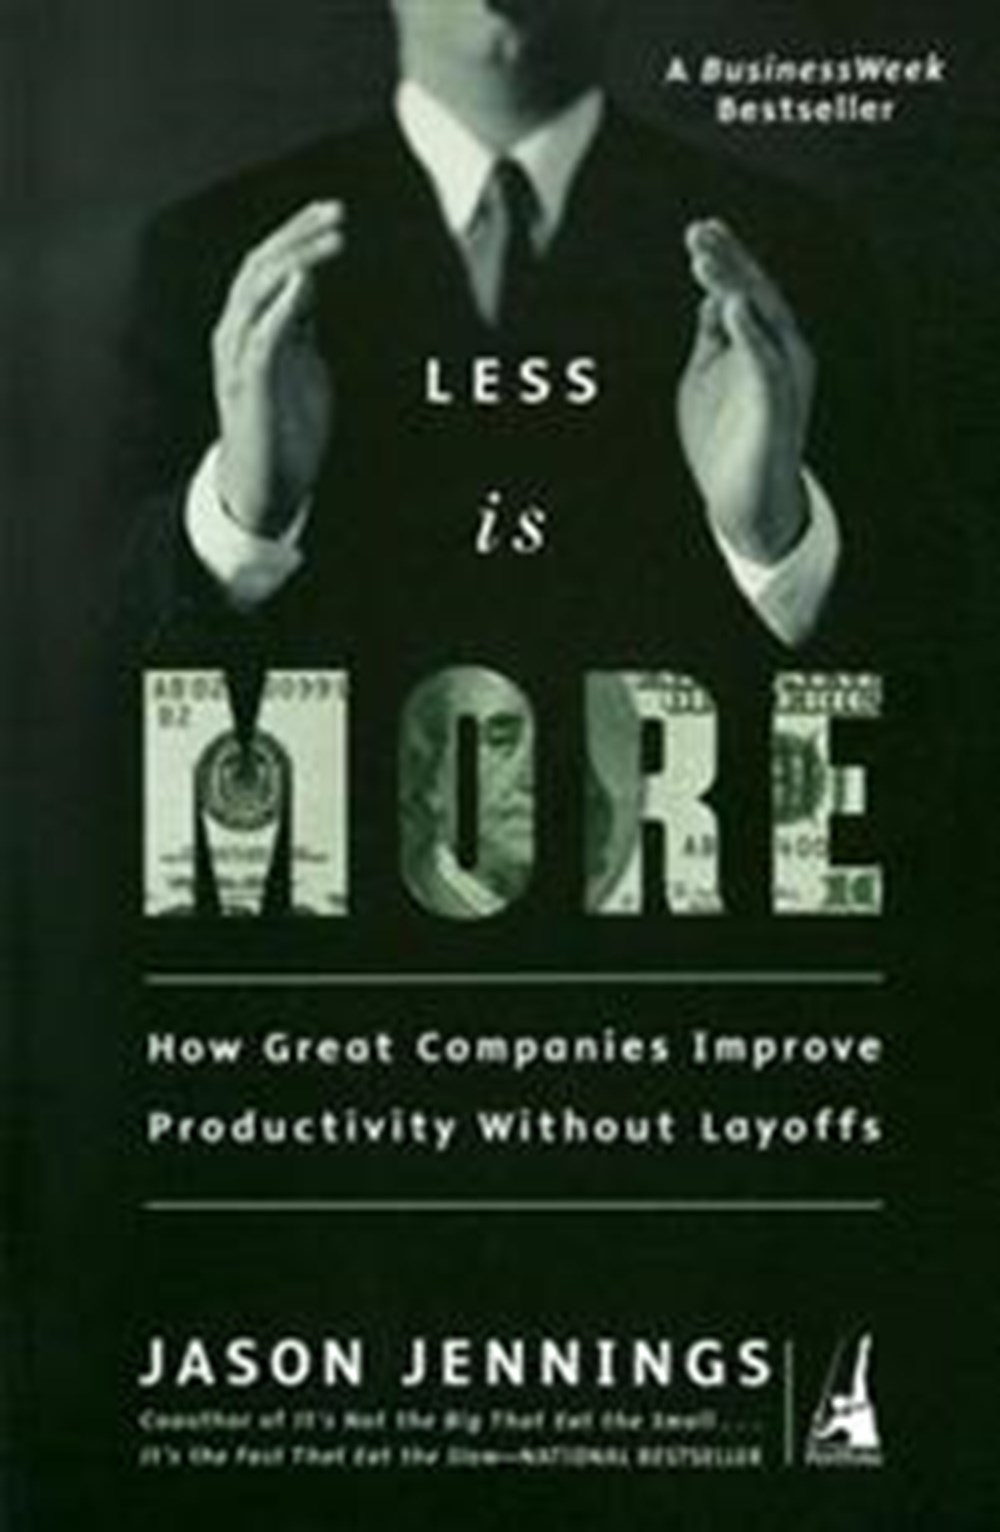 Less Is More How Great Companies Improve Productivity without Layoffs